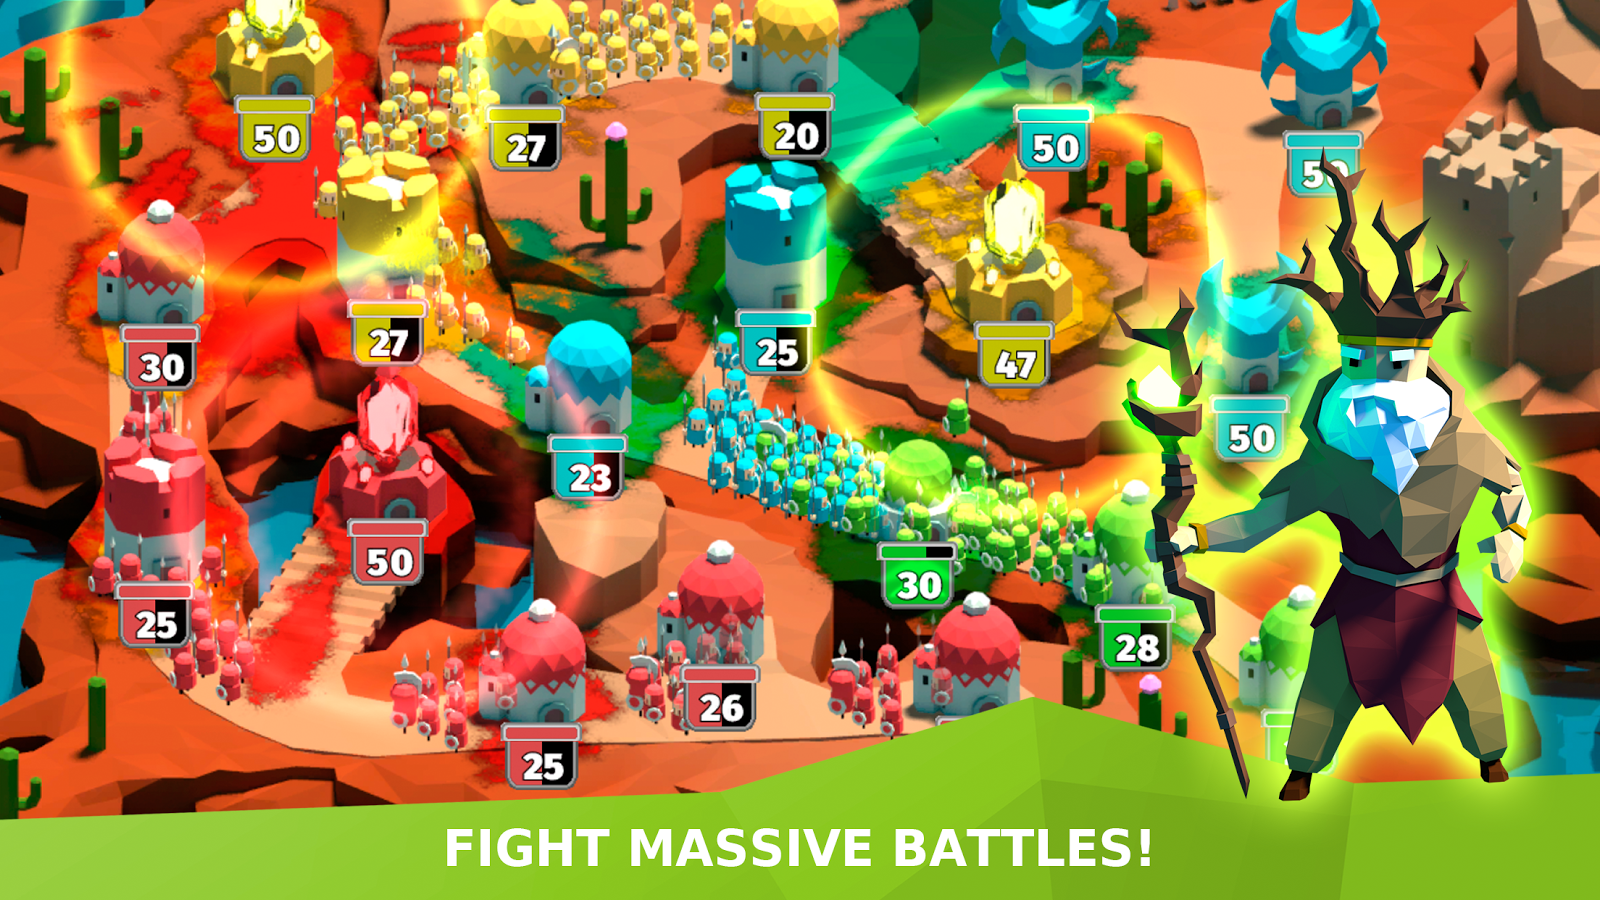 BattleTime Screenshot 6